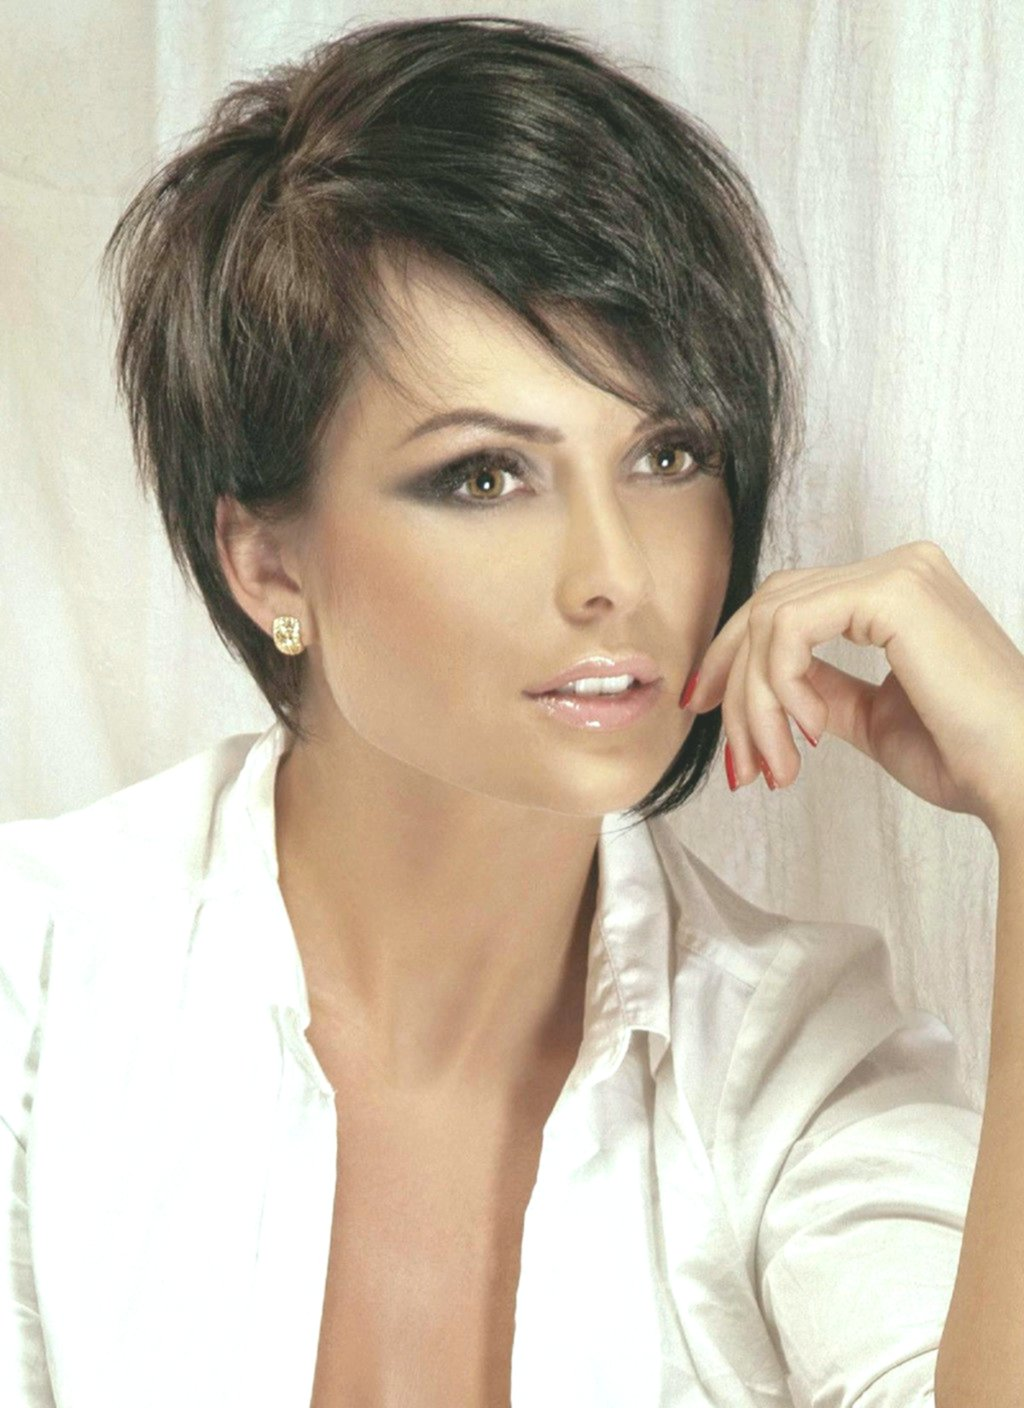 best of hairstyles step-cut image-amazing hairstyles step-cut photo